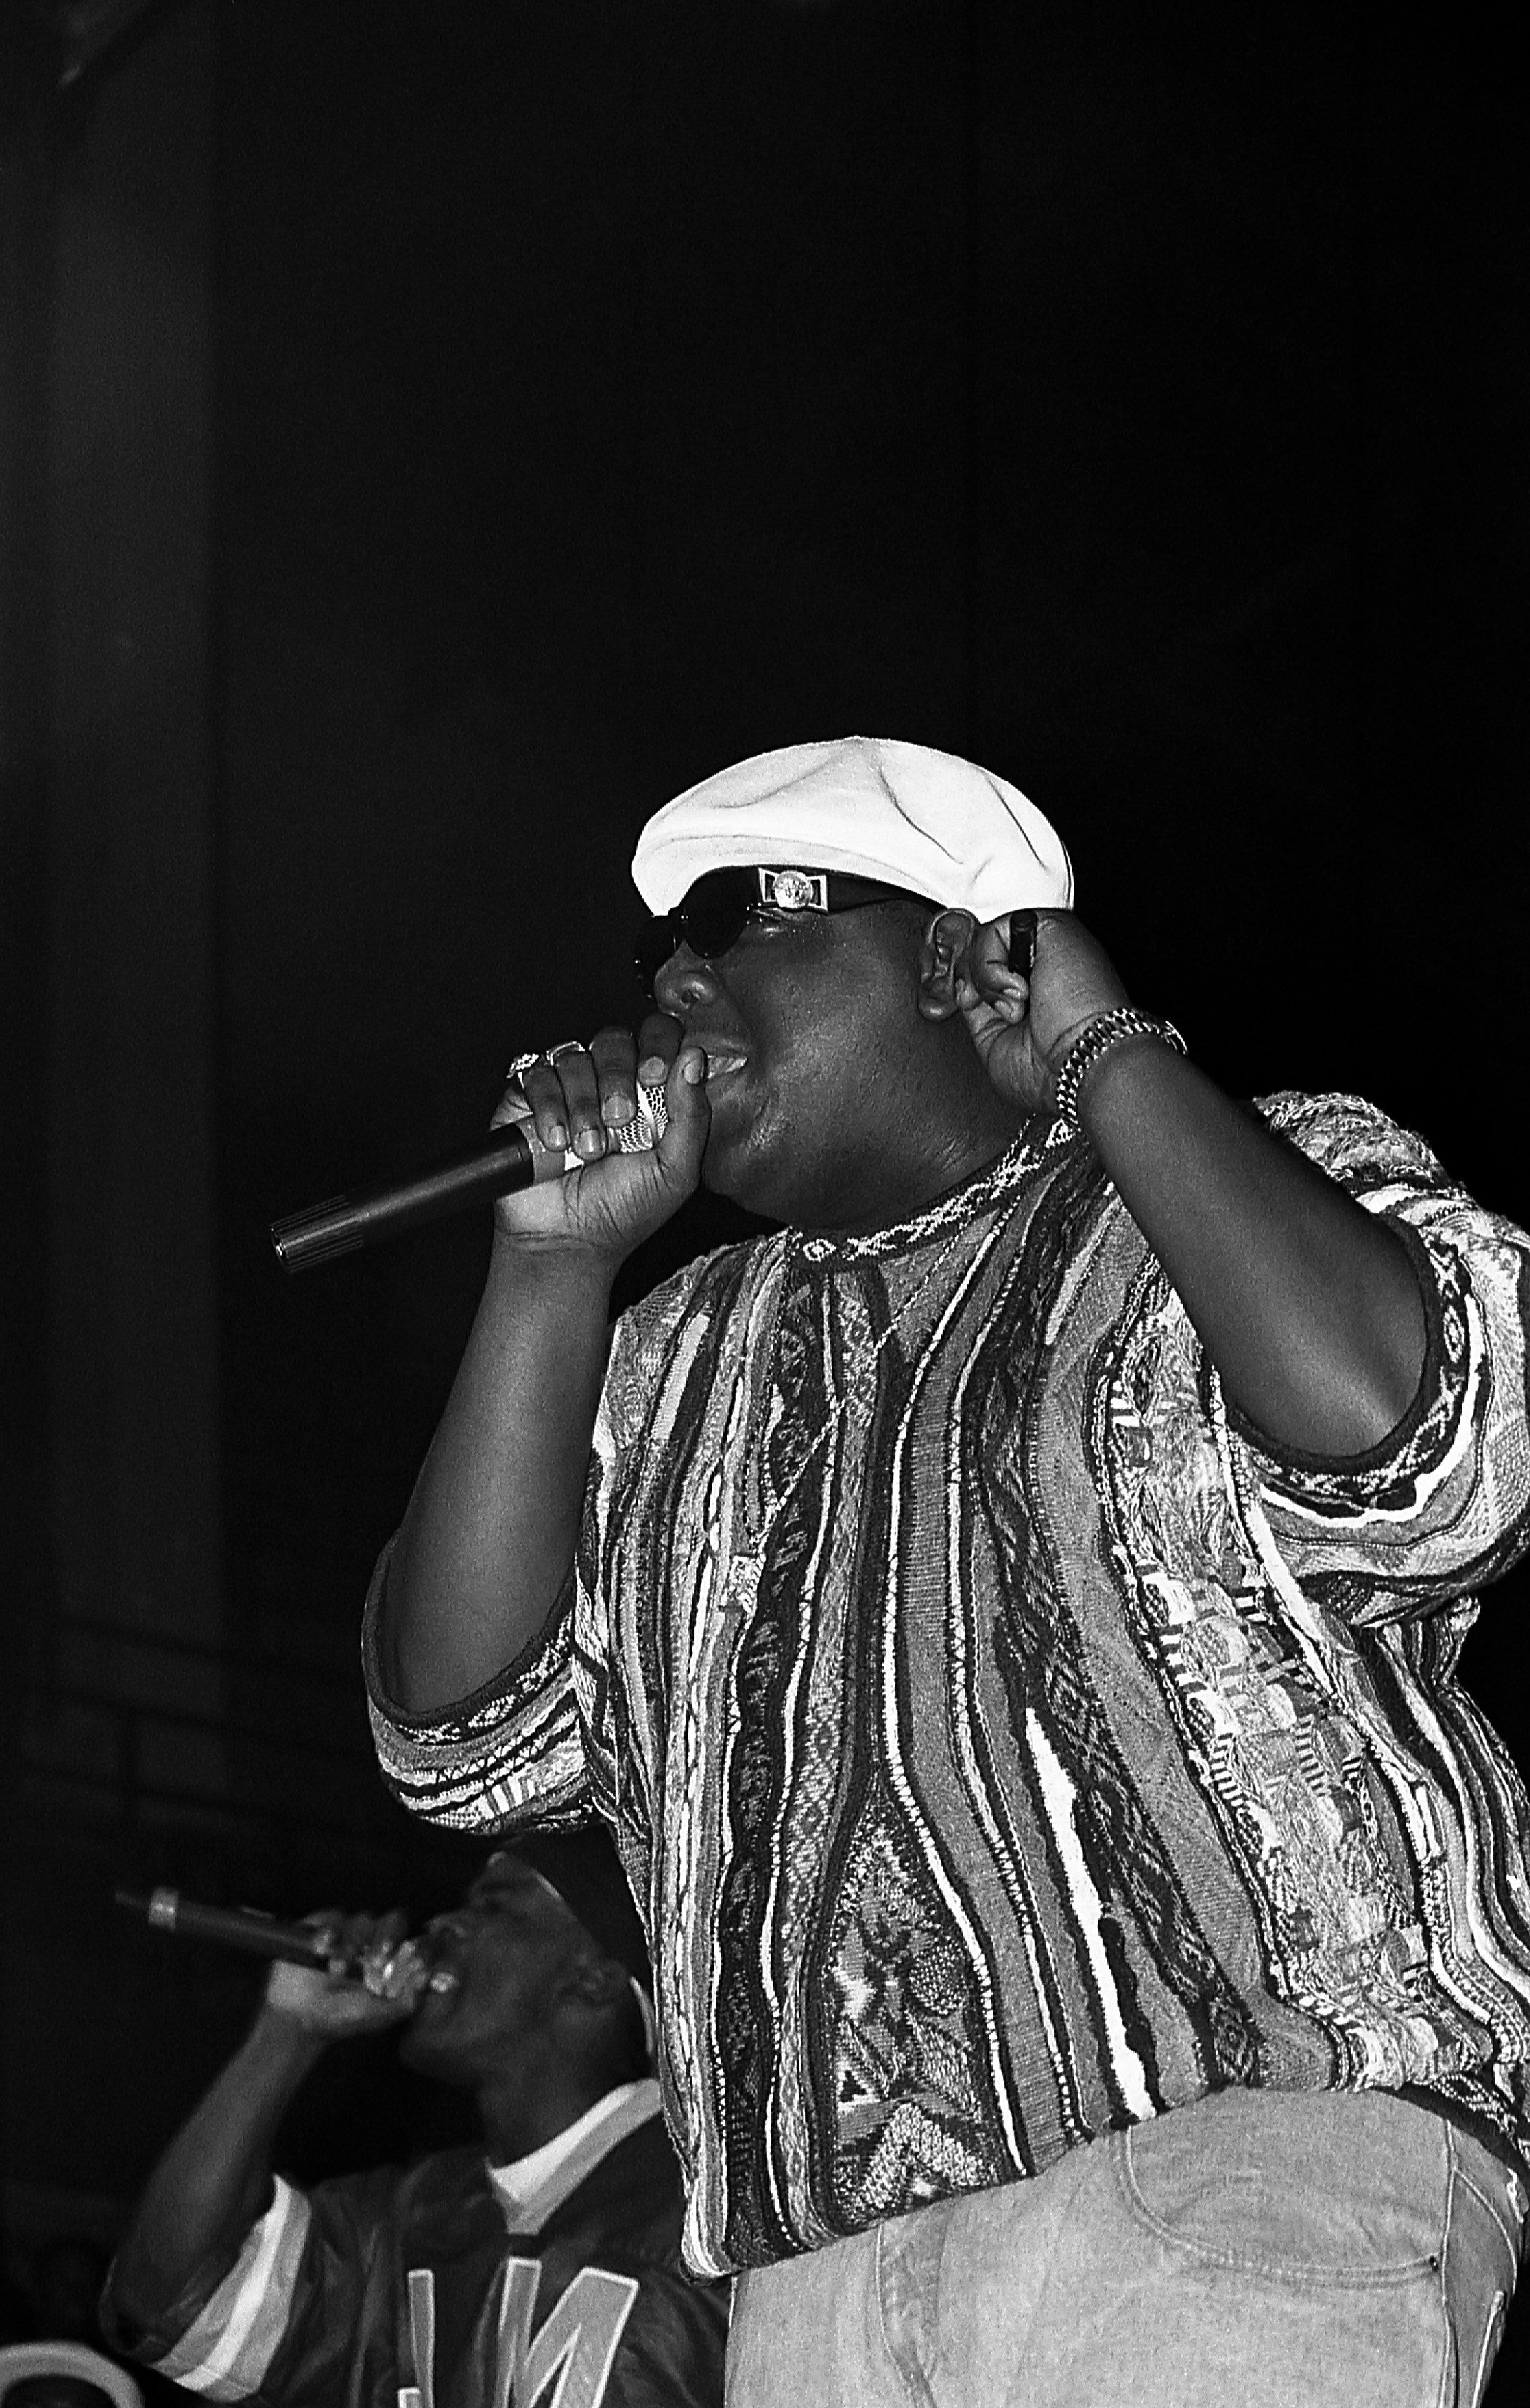 Versace Is Bringing Back Notorious B.I.G.s Iconic Sunglasses